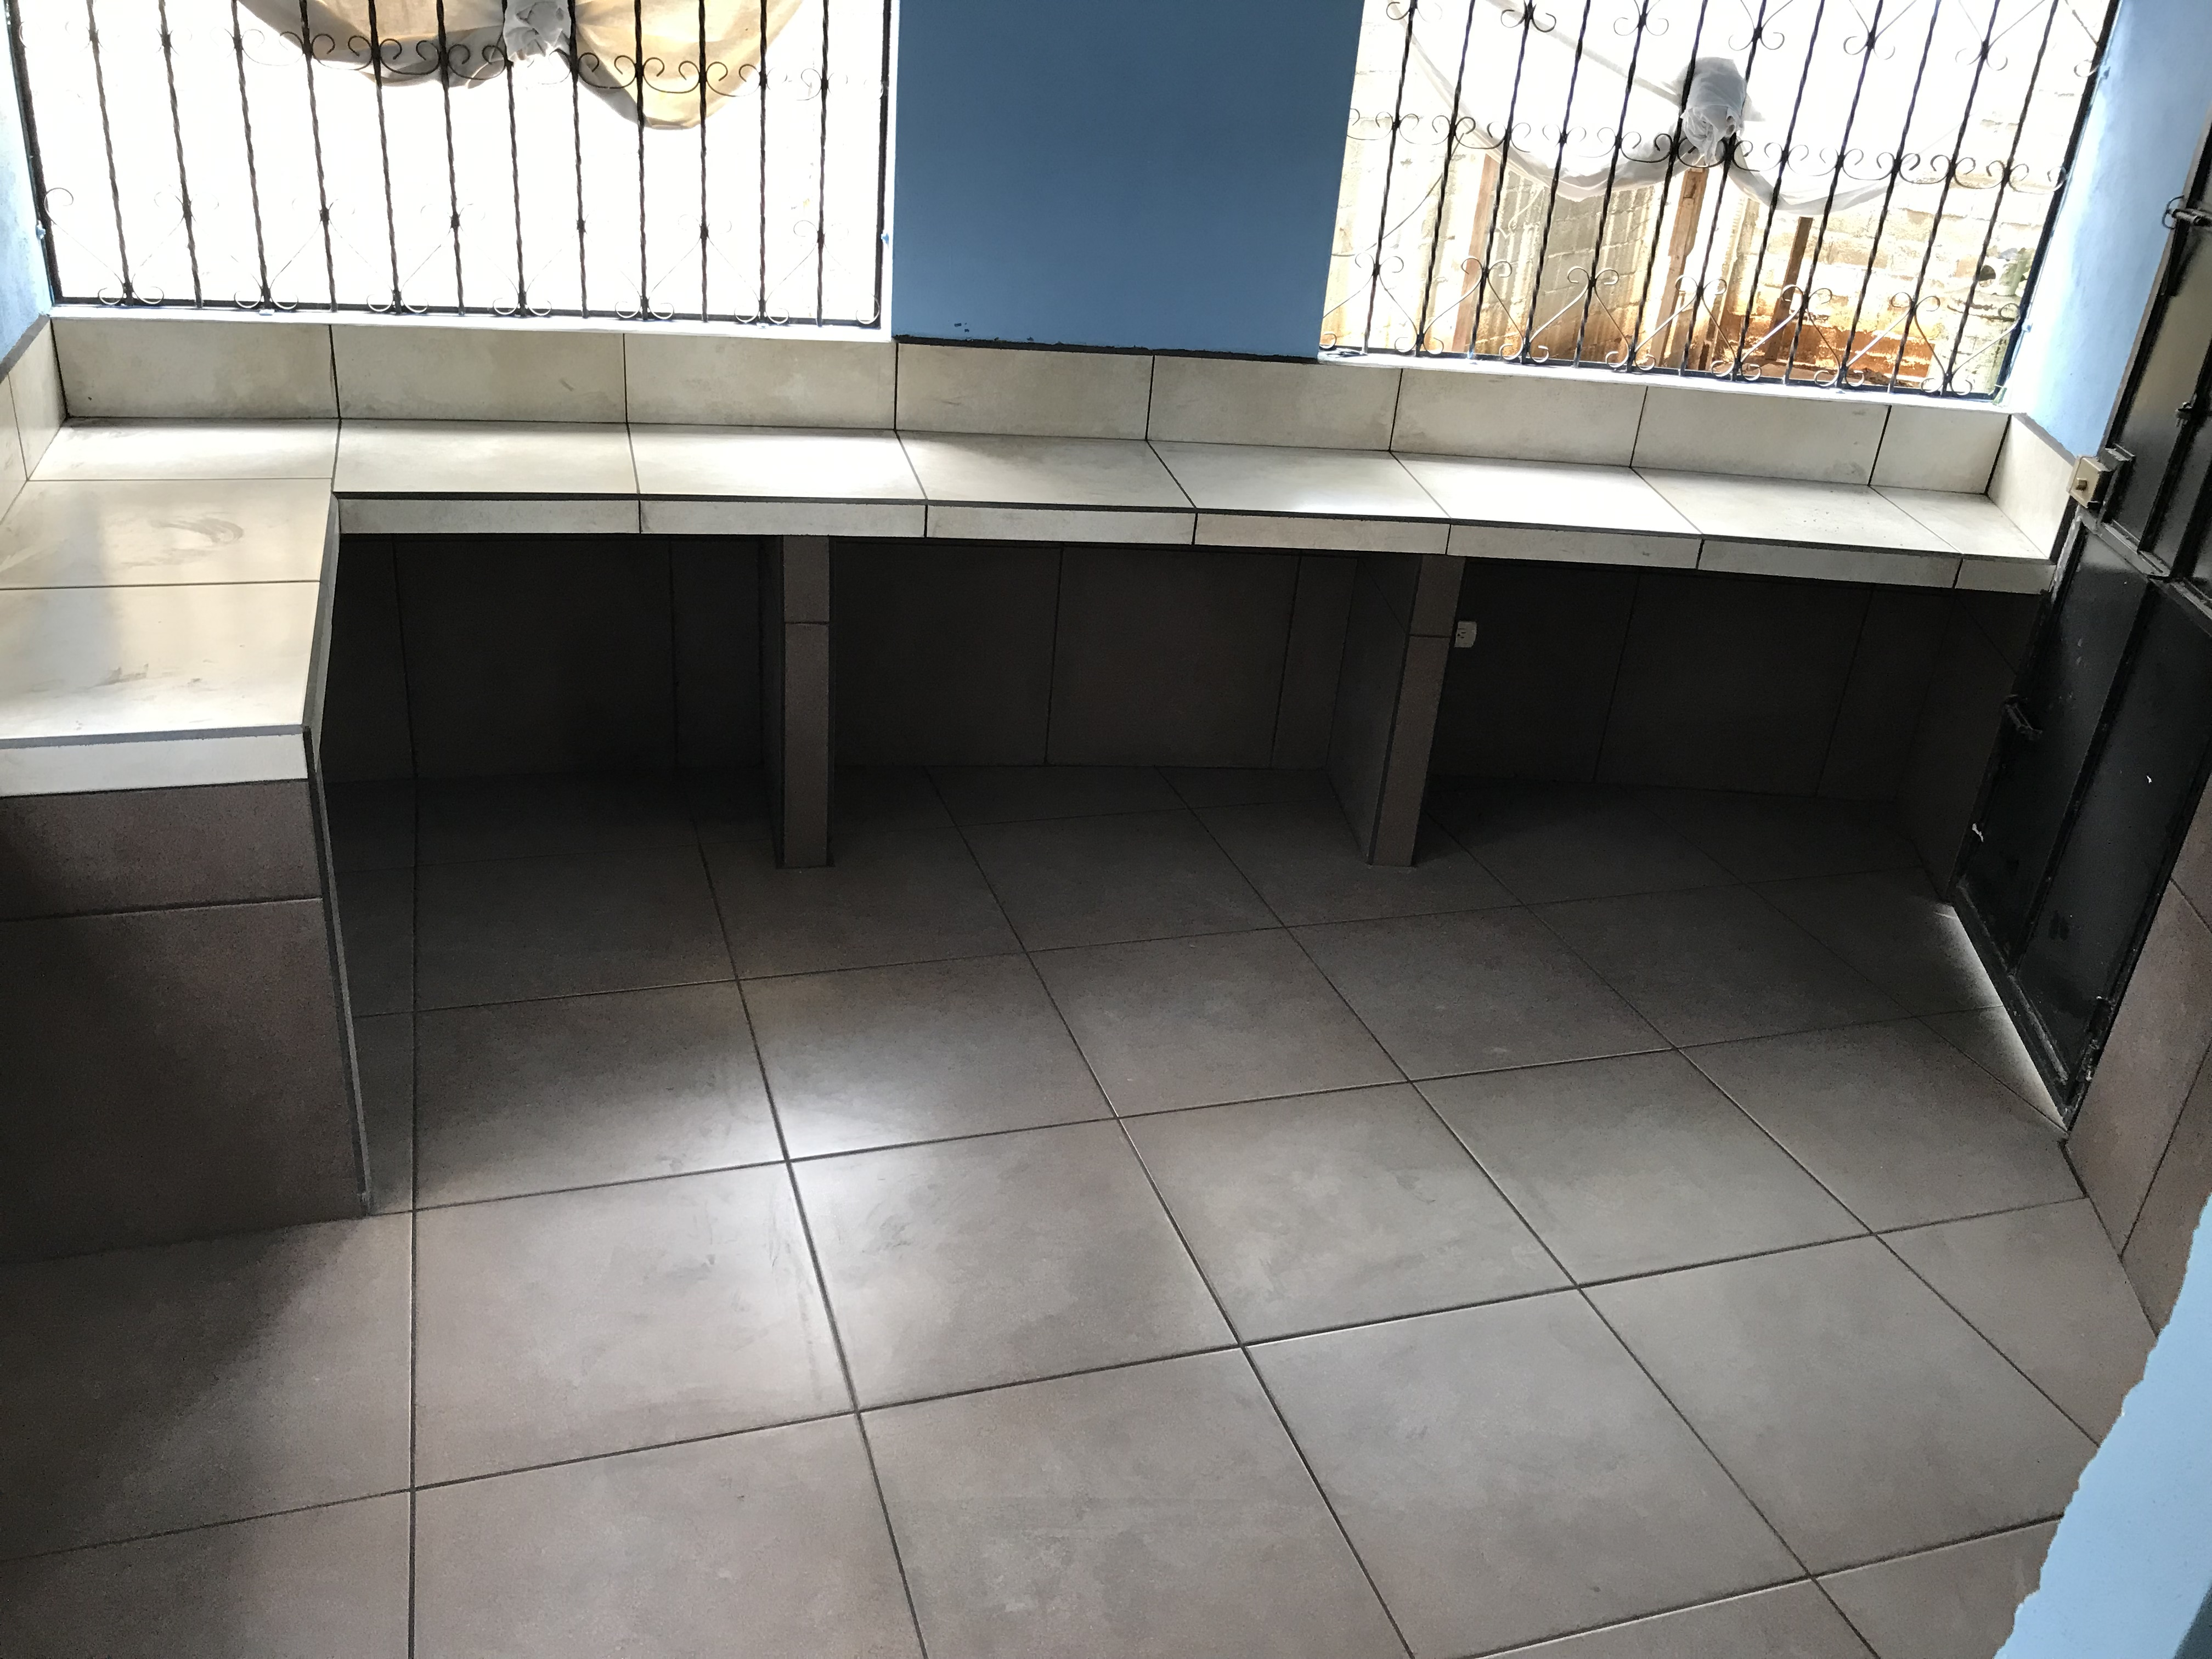 april_2019_kitchen_counter__and_floor_tiled.JPG